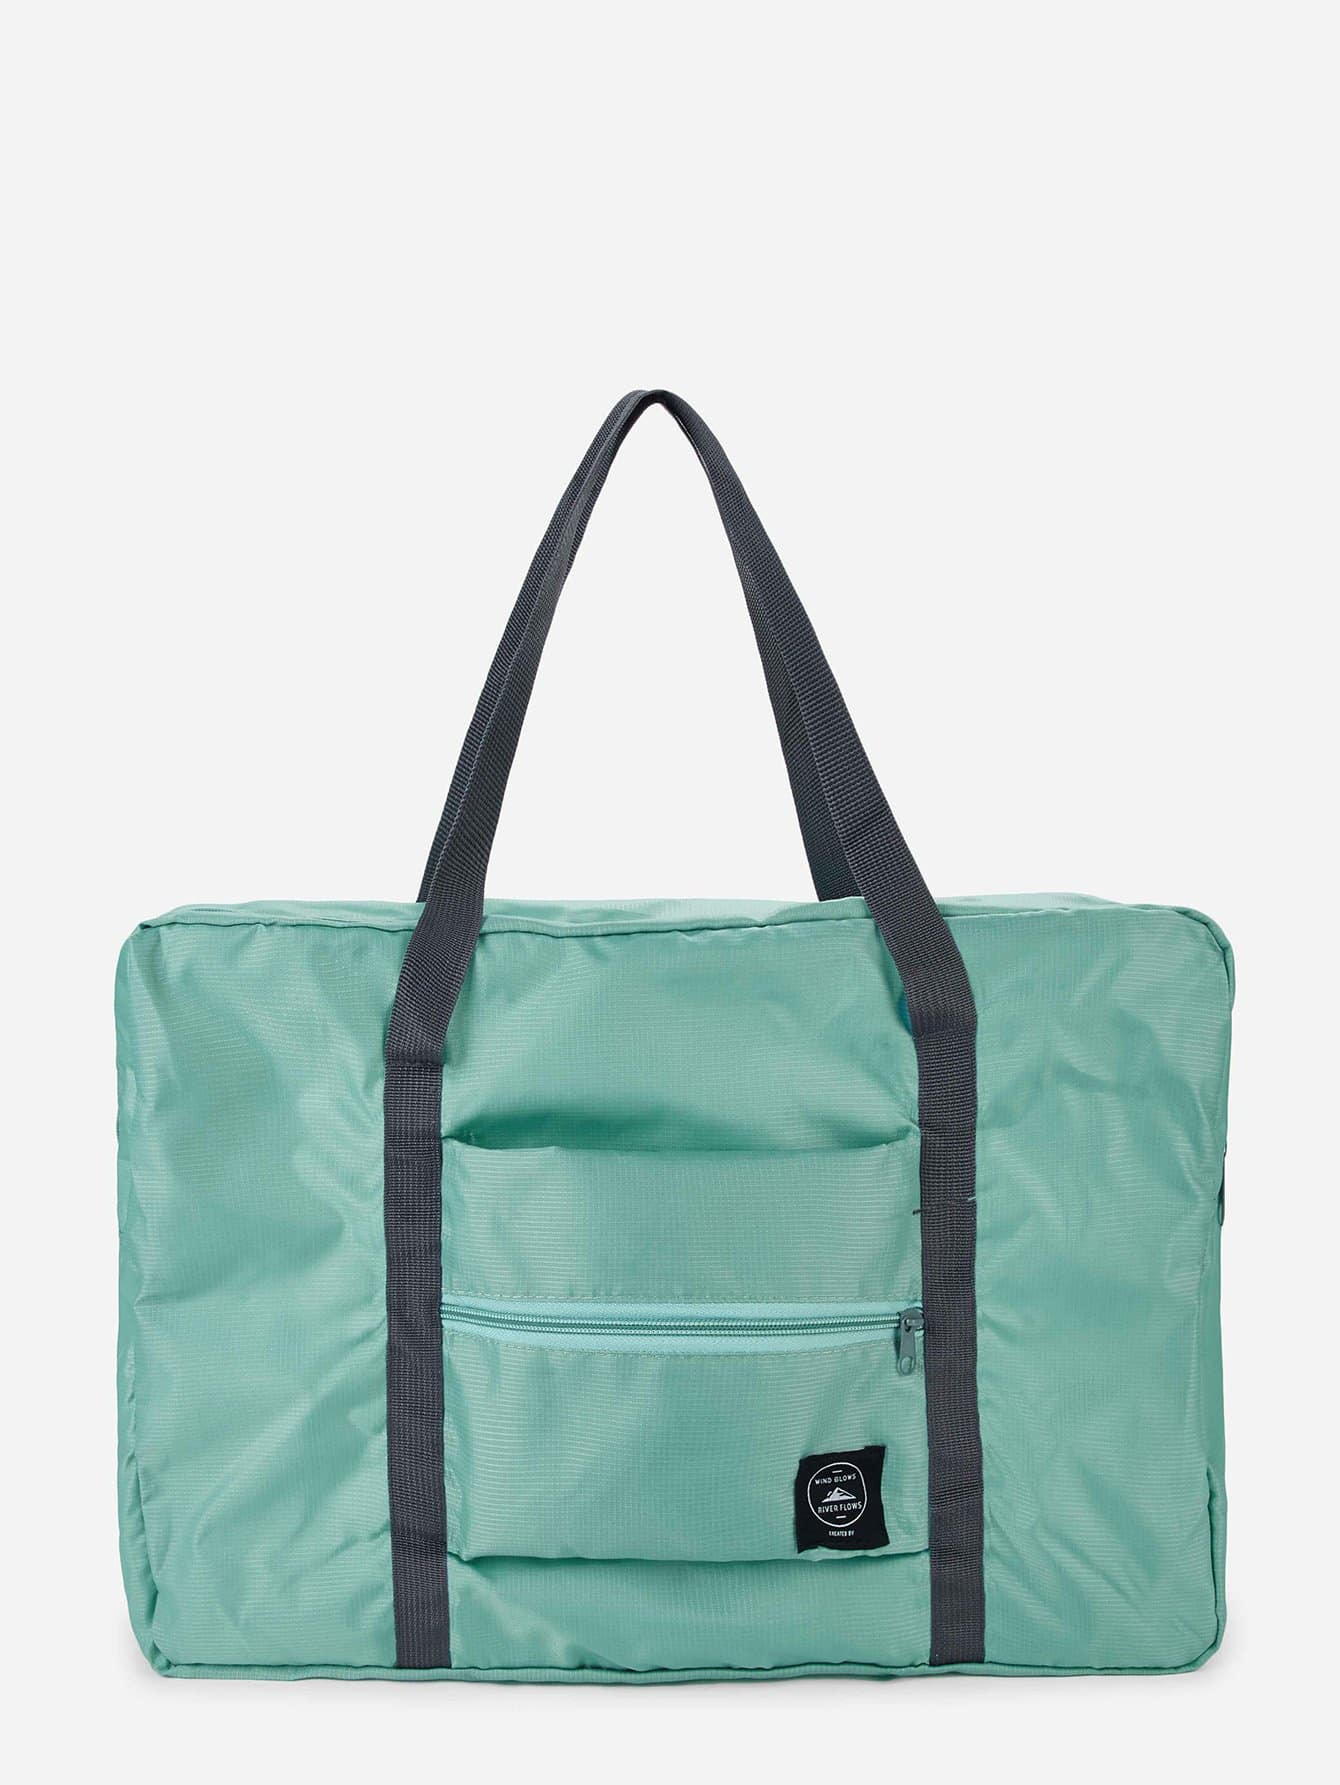 SHEIN Logo Clothes Storage Bag